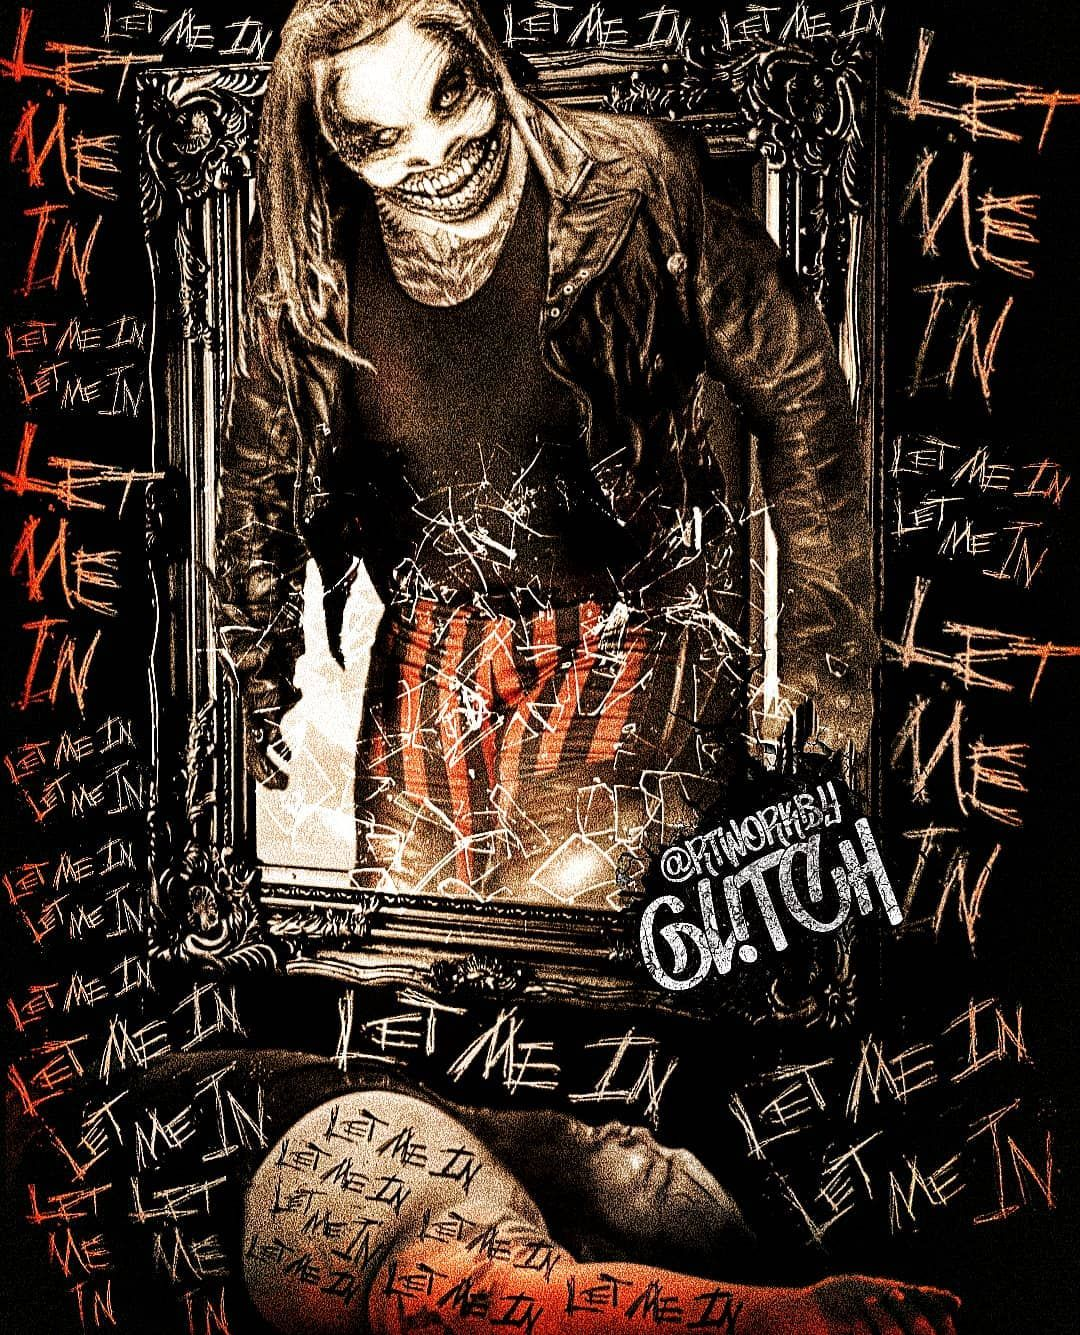 """@GL!TCH on Instagram: """"The countdown last POSTERS 1 of 2 @thewindhamrotunda hes here tonight we let him in #braywyatt #thefiend @wwe #wwe #smackdownwwe…"""""""